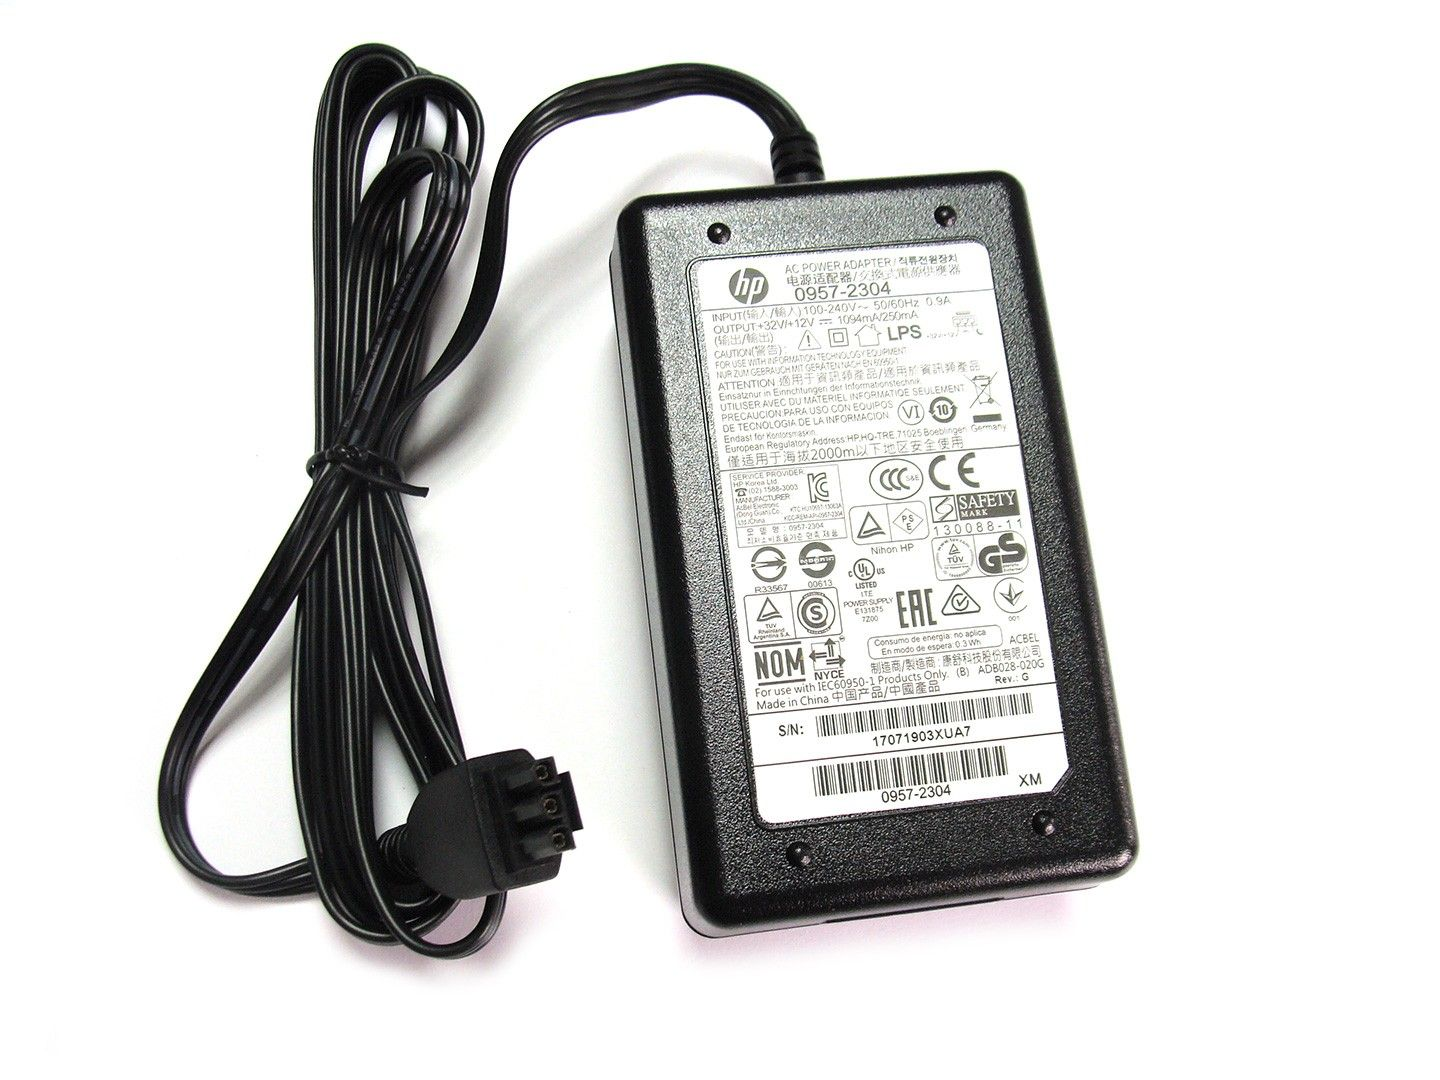 Original AC Power Supply Adapter 0957-2304 32V 1094mA For HP pro3610 7110 7510